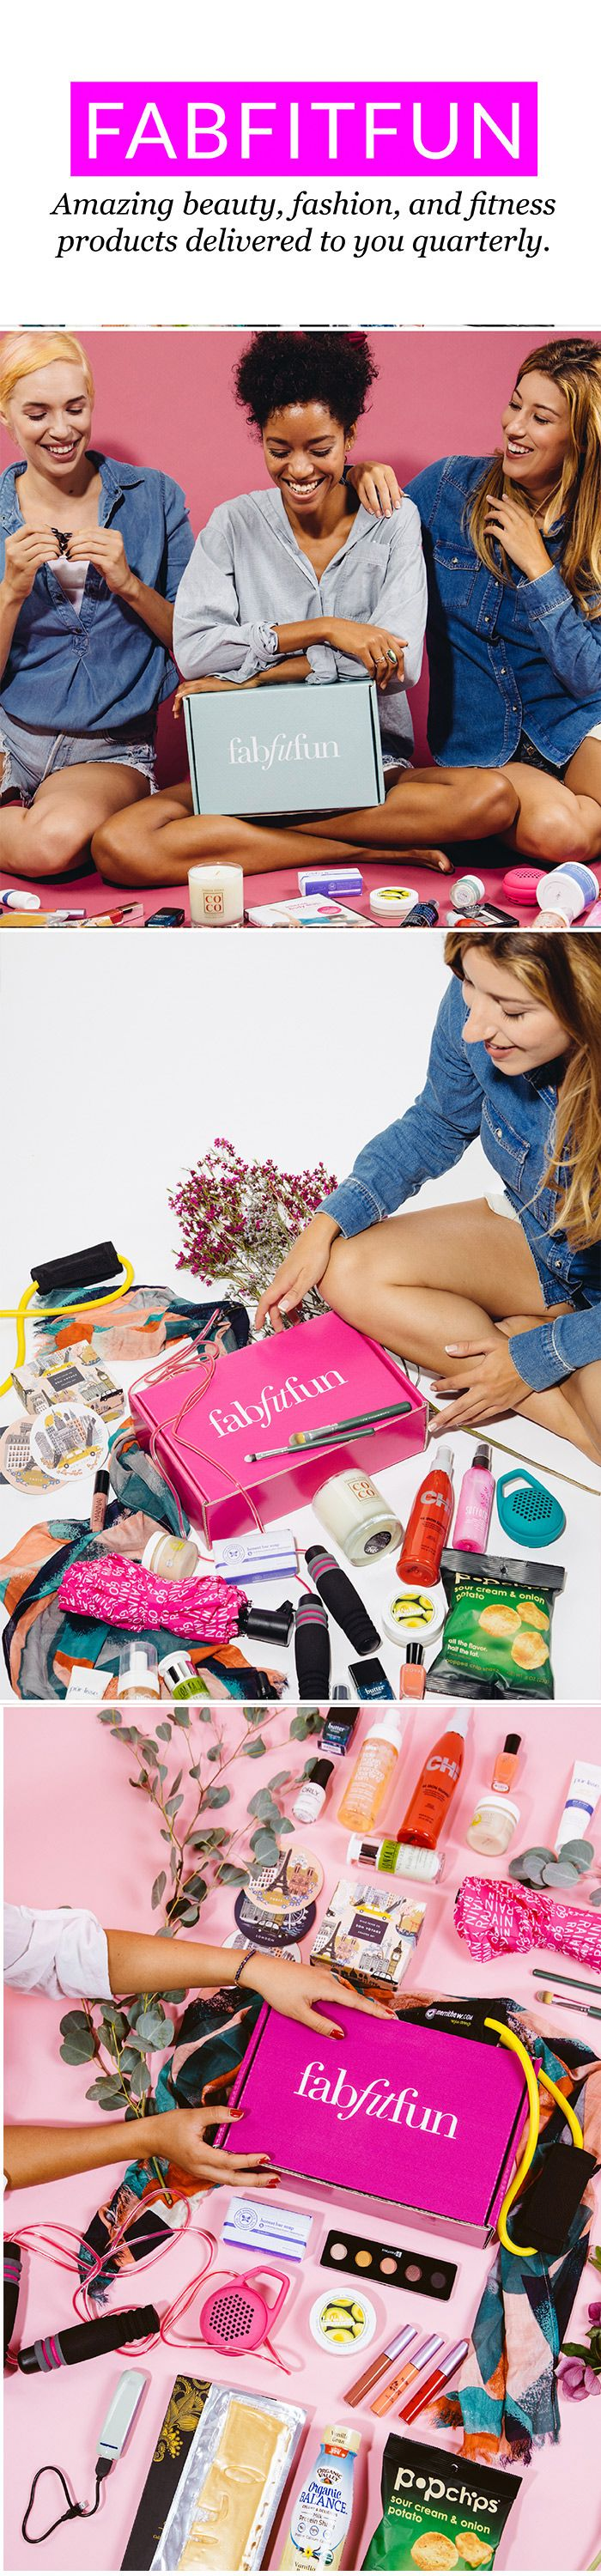 Feel fabulous even on a budget with FabFitFun's must-have box! Each season we send the season's best straight to your doorstep: full size, premium beauty, fashion, and fitness products. Every item in the box is hand-picked by our staff to make you feel happy, healthy, and ahead of the trend. Get started with a life well-lived and get your box with over $200 worth of amazing products!